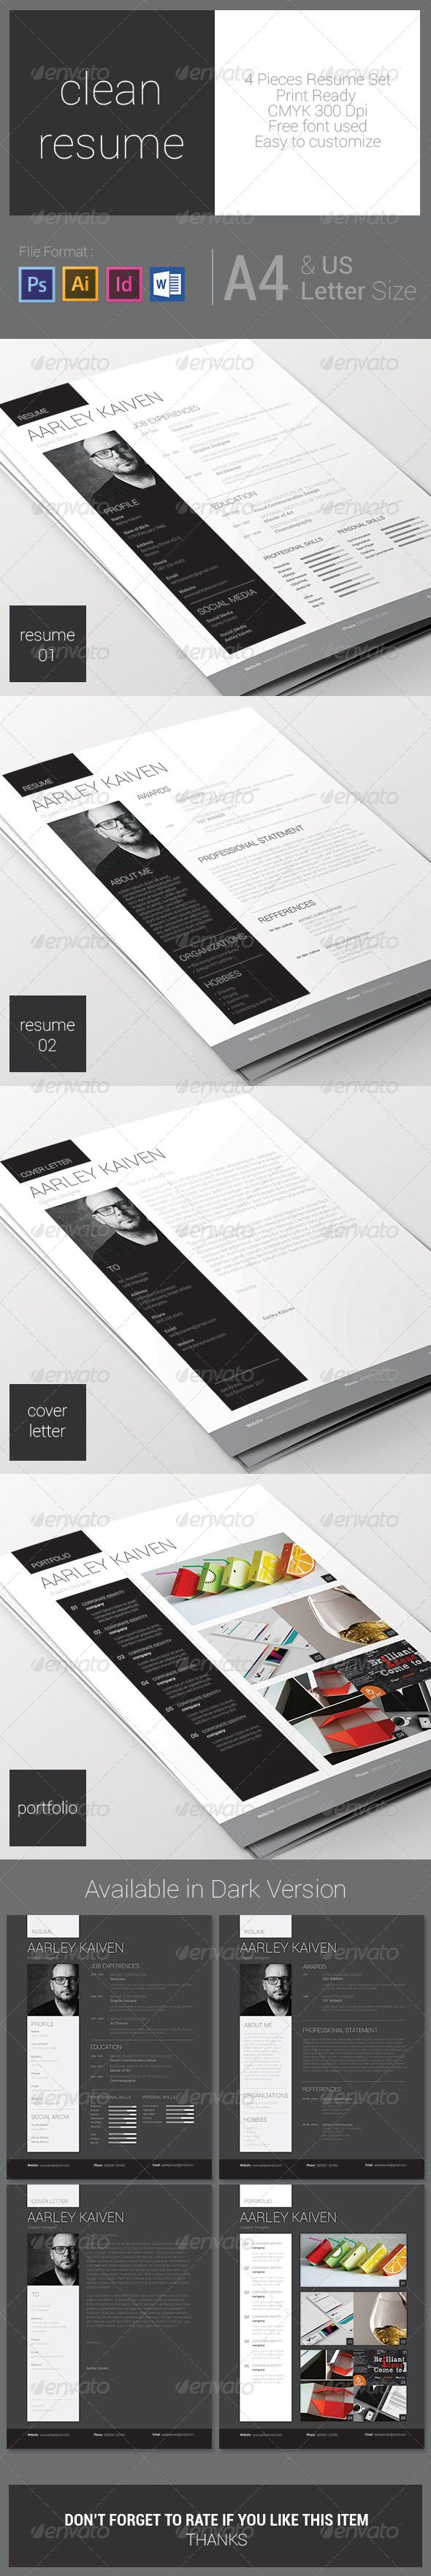 Clean Resume Set Curriculum Design Resume And Resume Styles